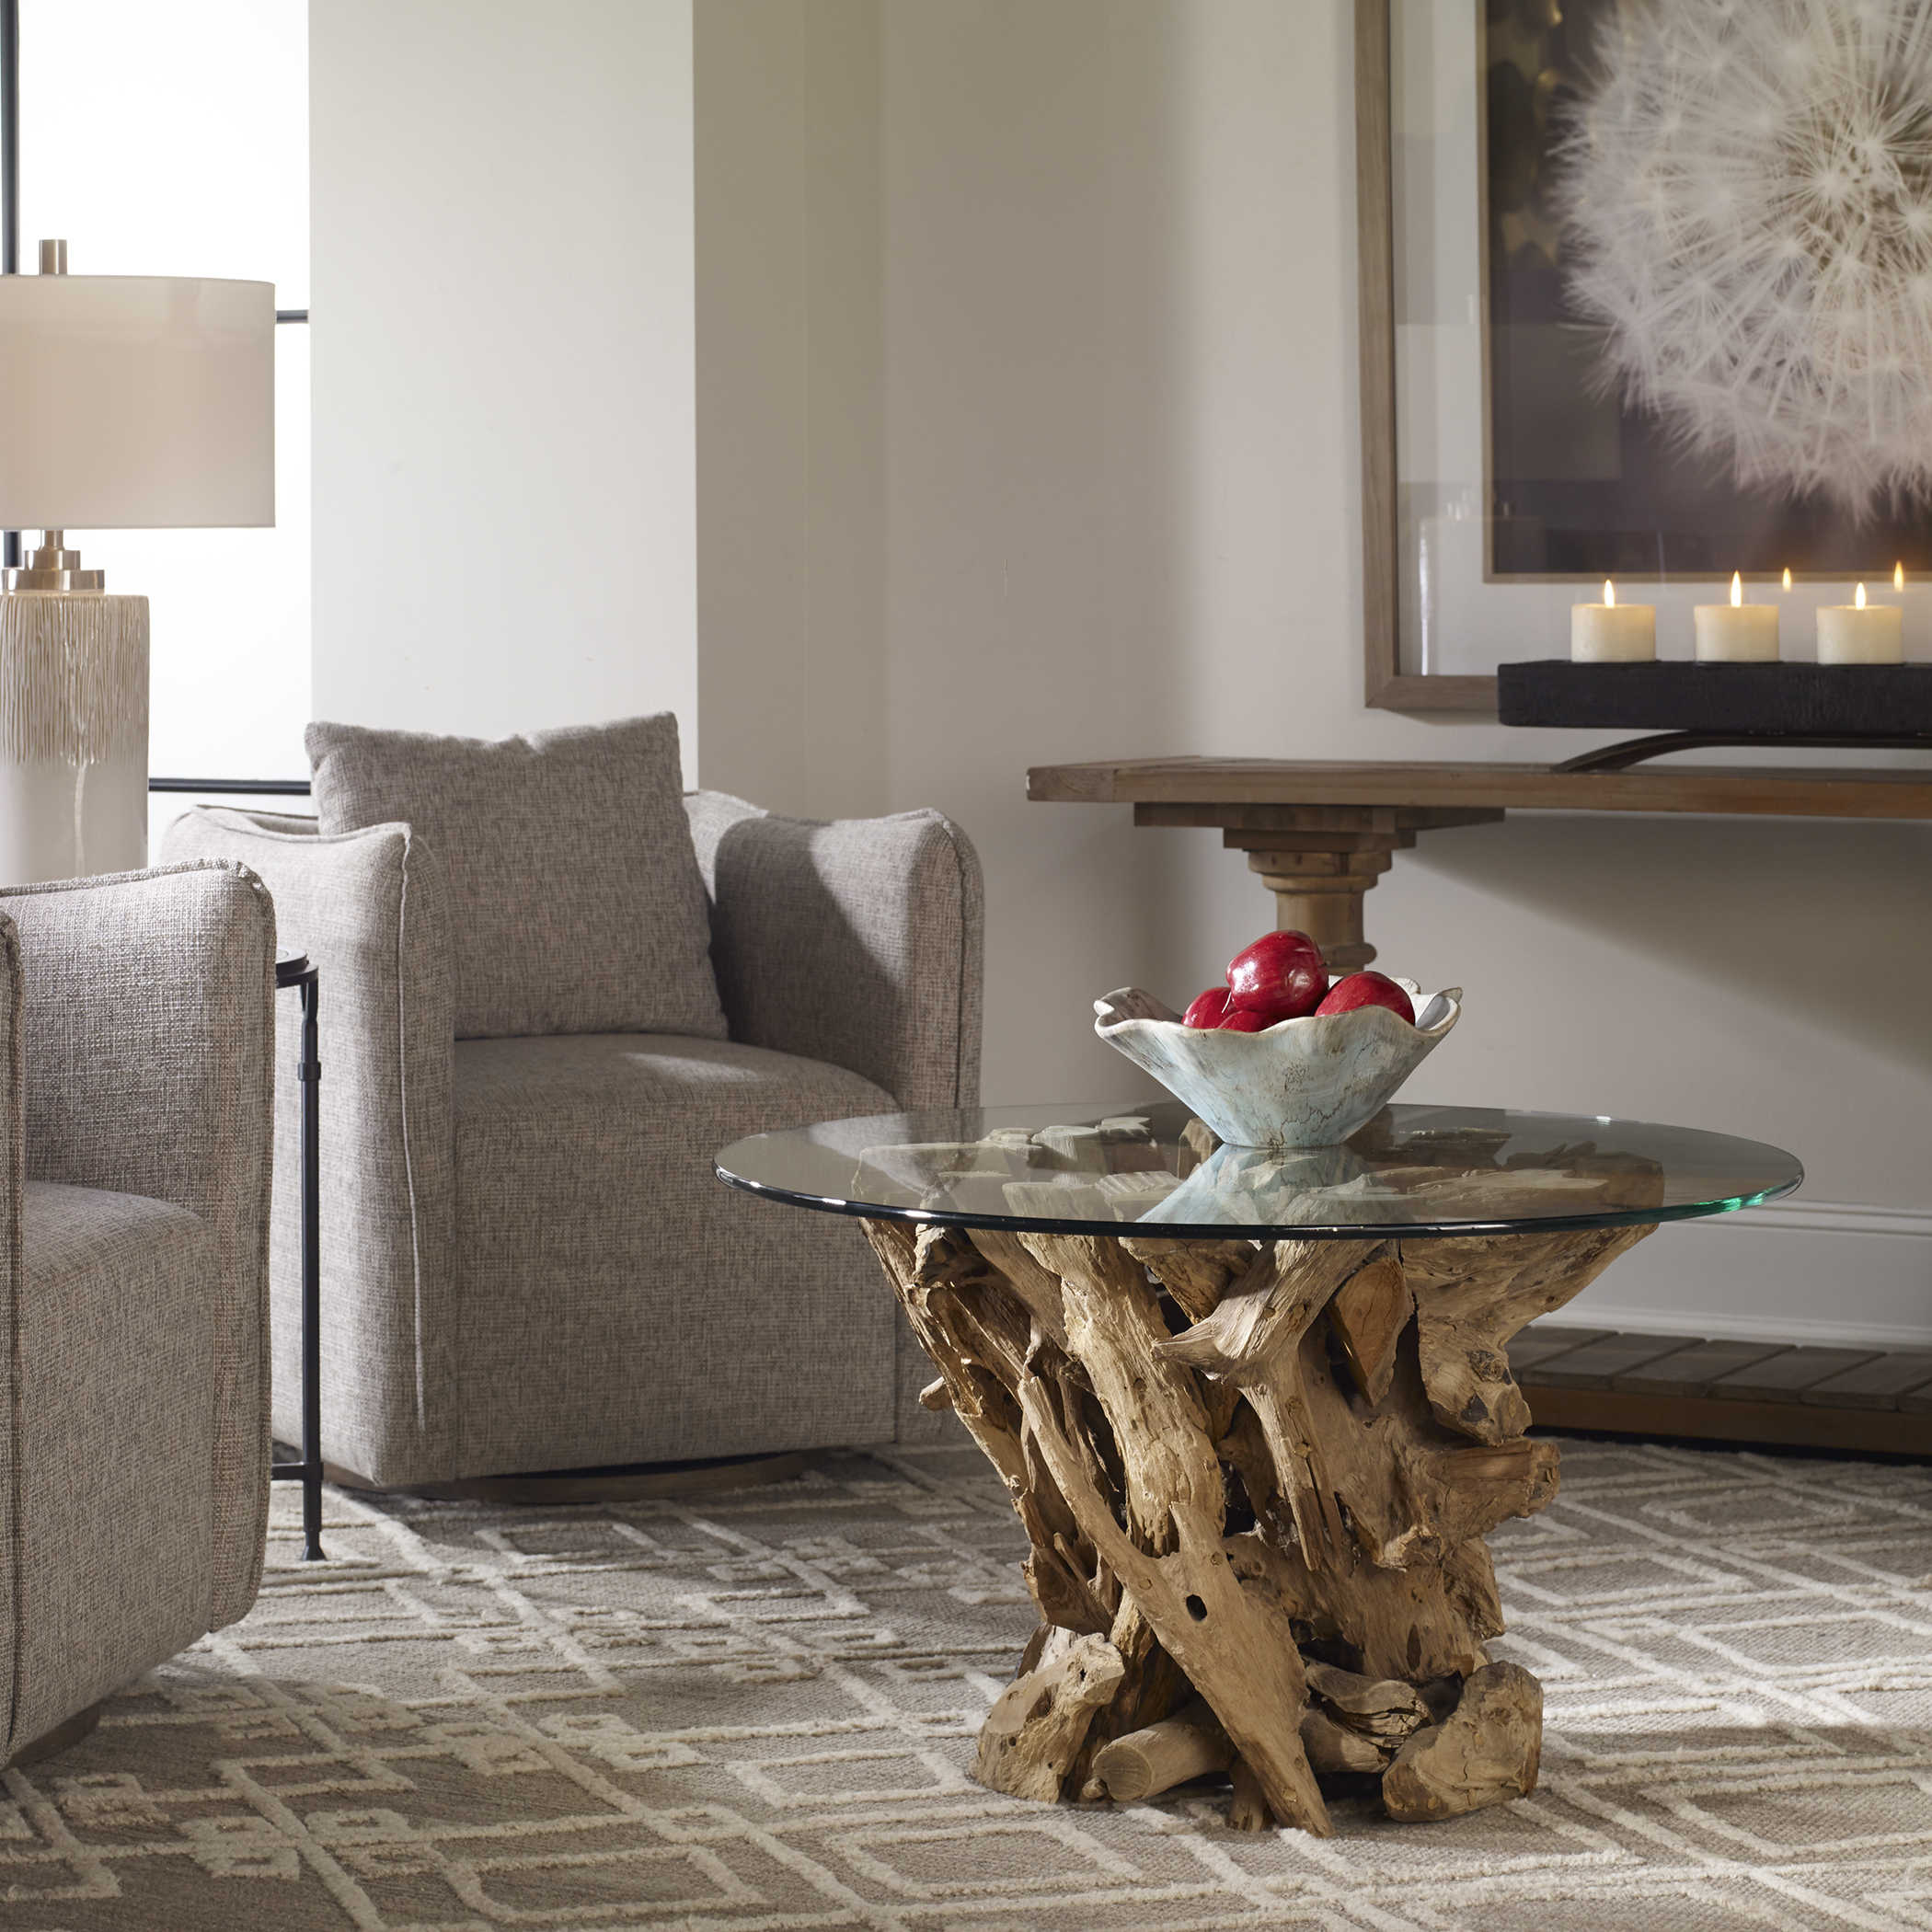 Tables Natural Teak Root Wood Bunching, Uttermost Dining Room Tables